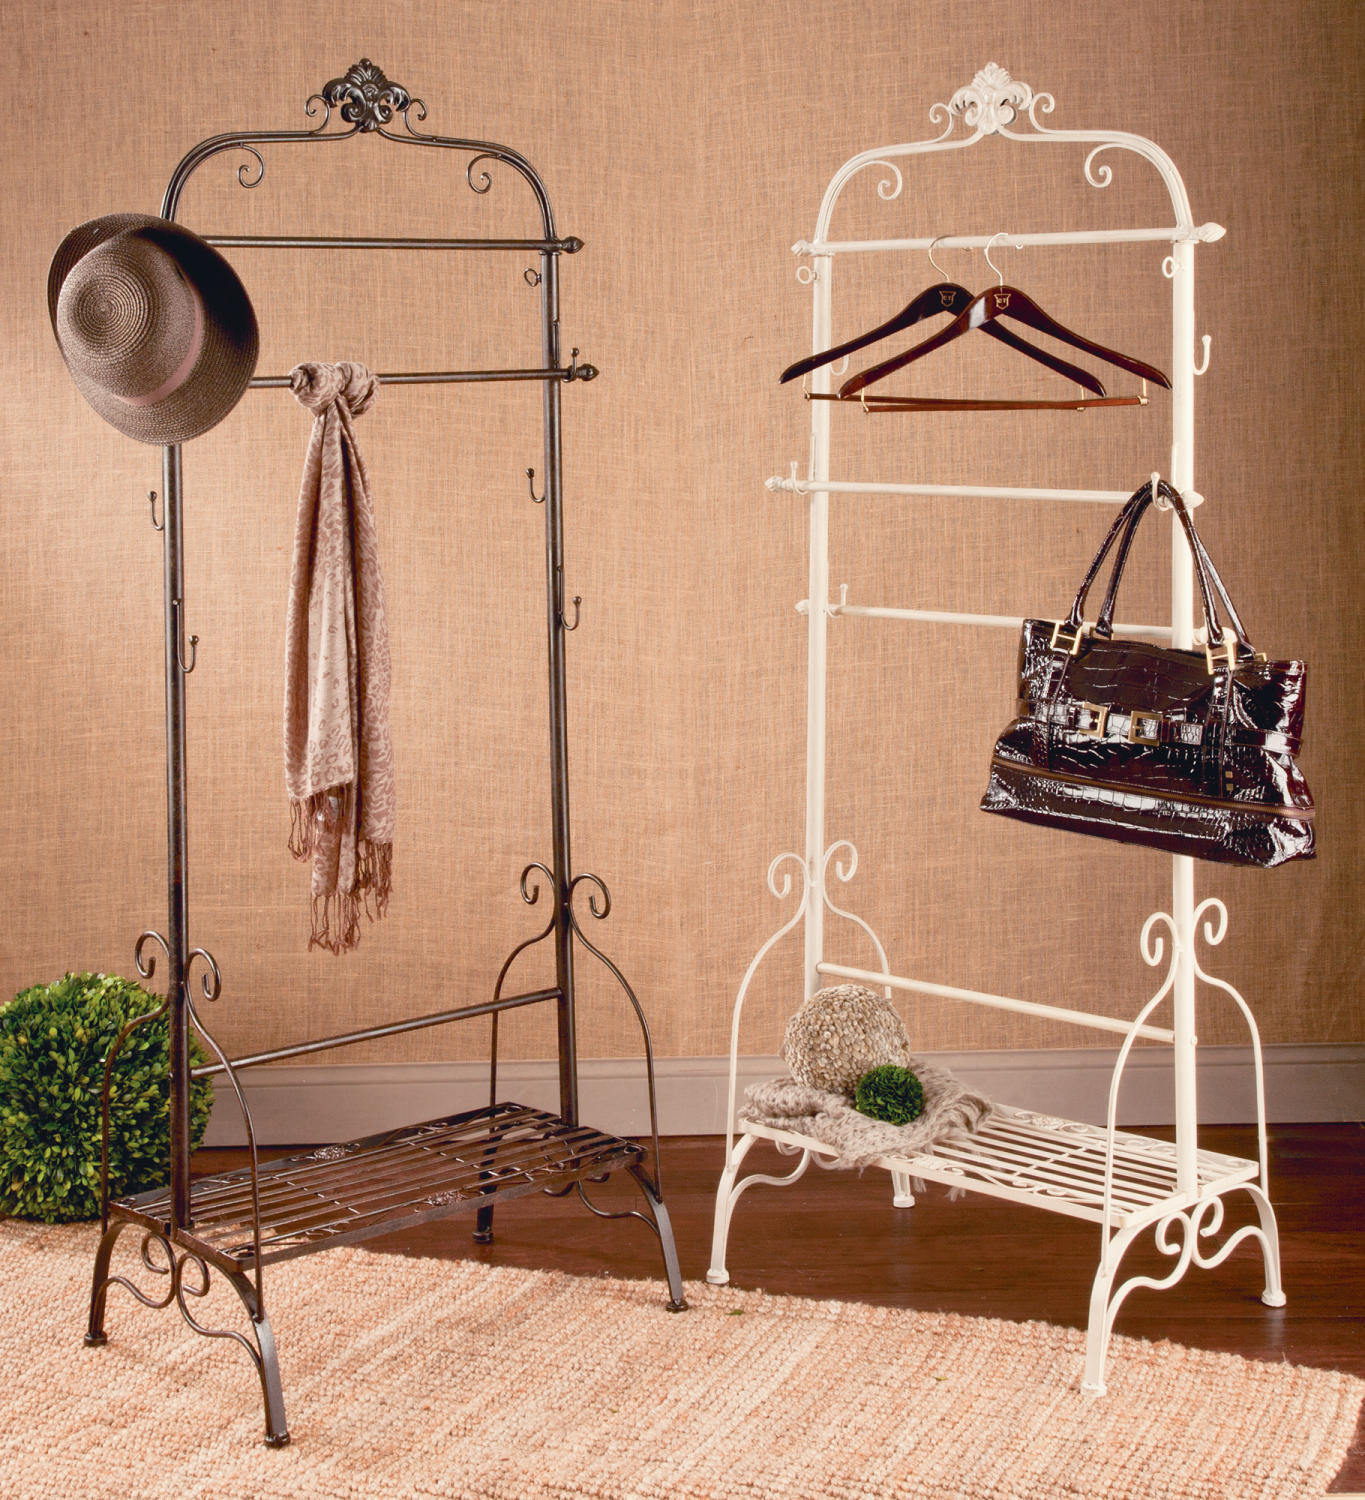 Fashion Display Rack     (Scarf, Purse & Fashion Displays)